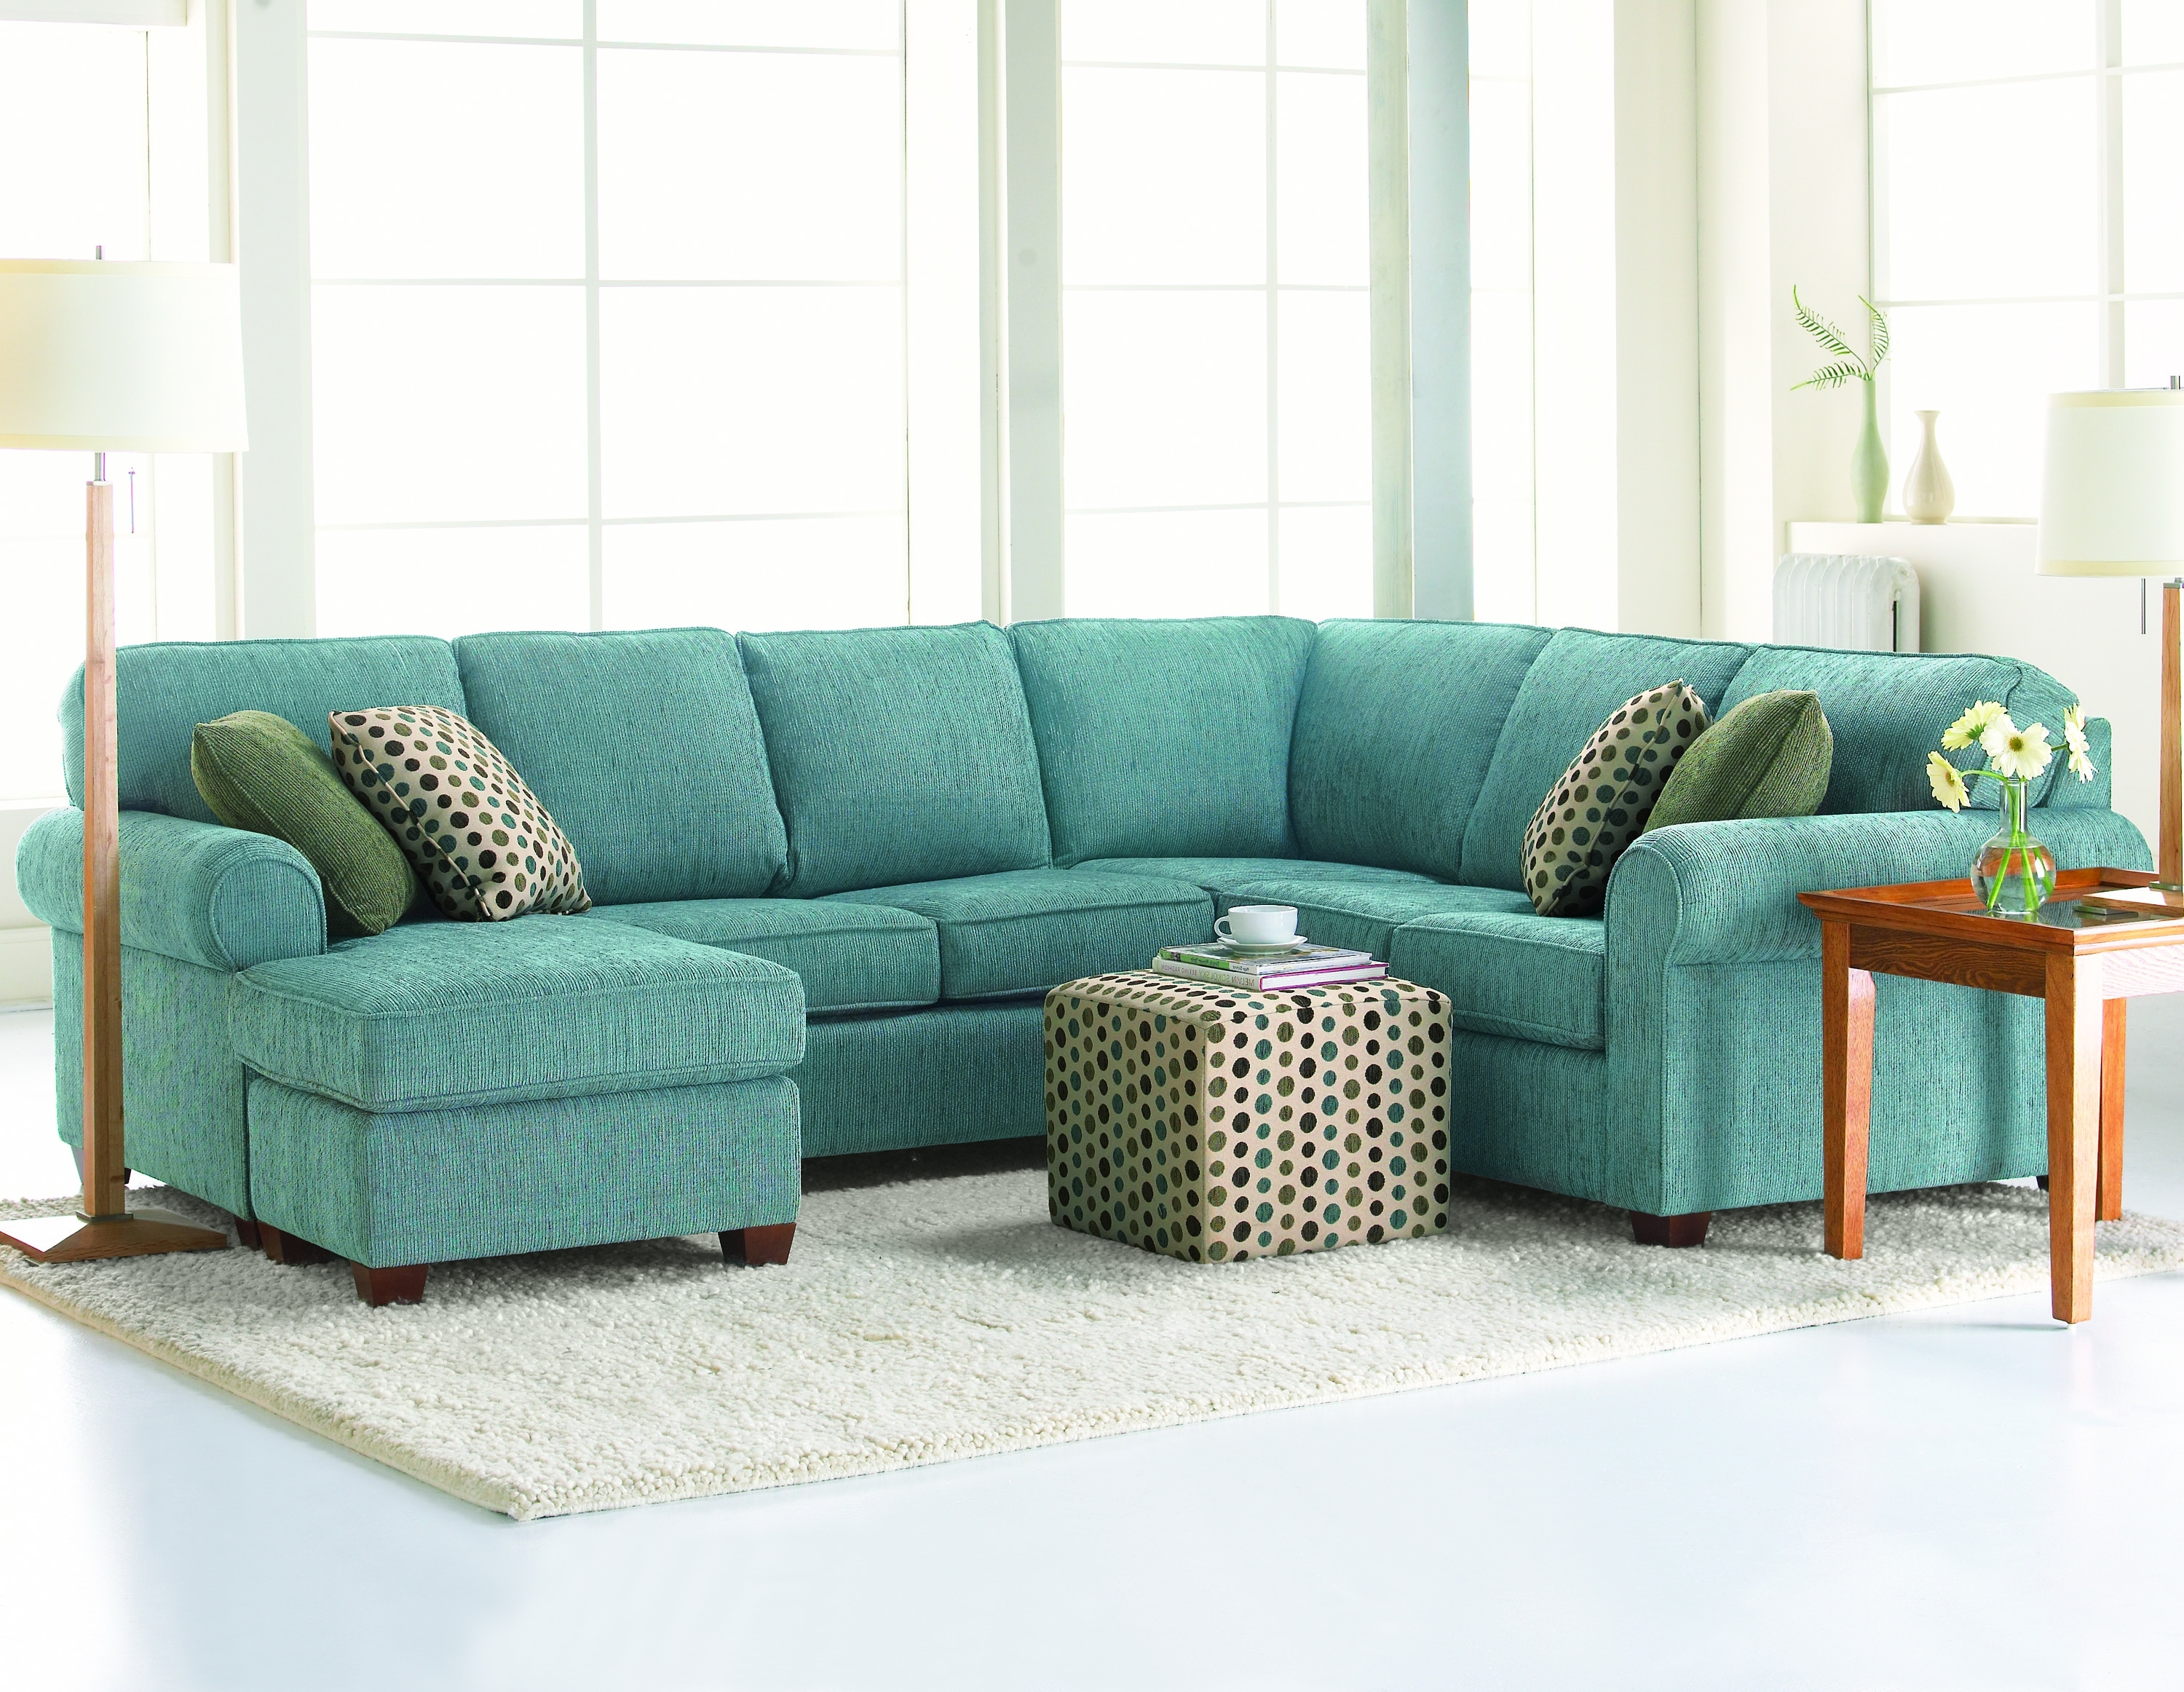 Newest Ontario Sectional Sofas Pertaining To Sectional Sofas – Thompson Brothers Furniture (View 3 of 15)